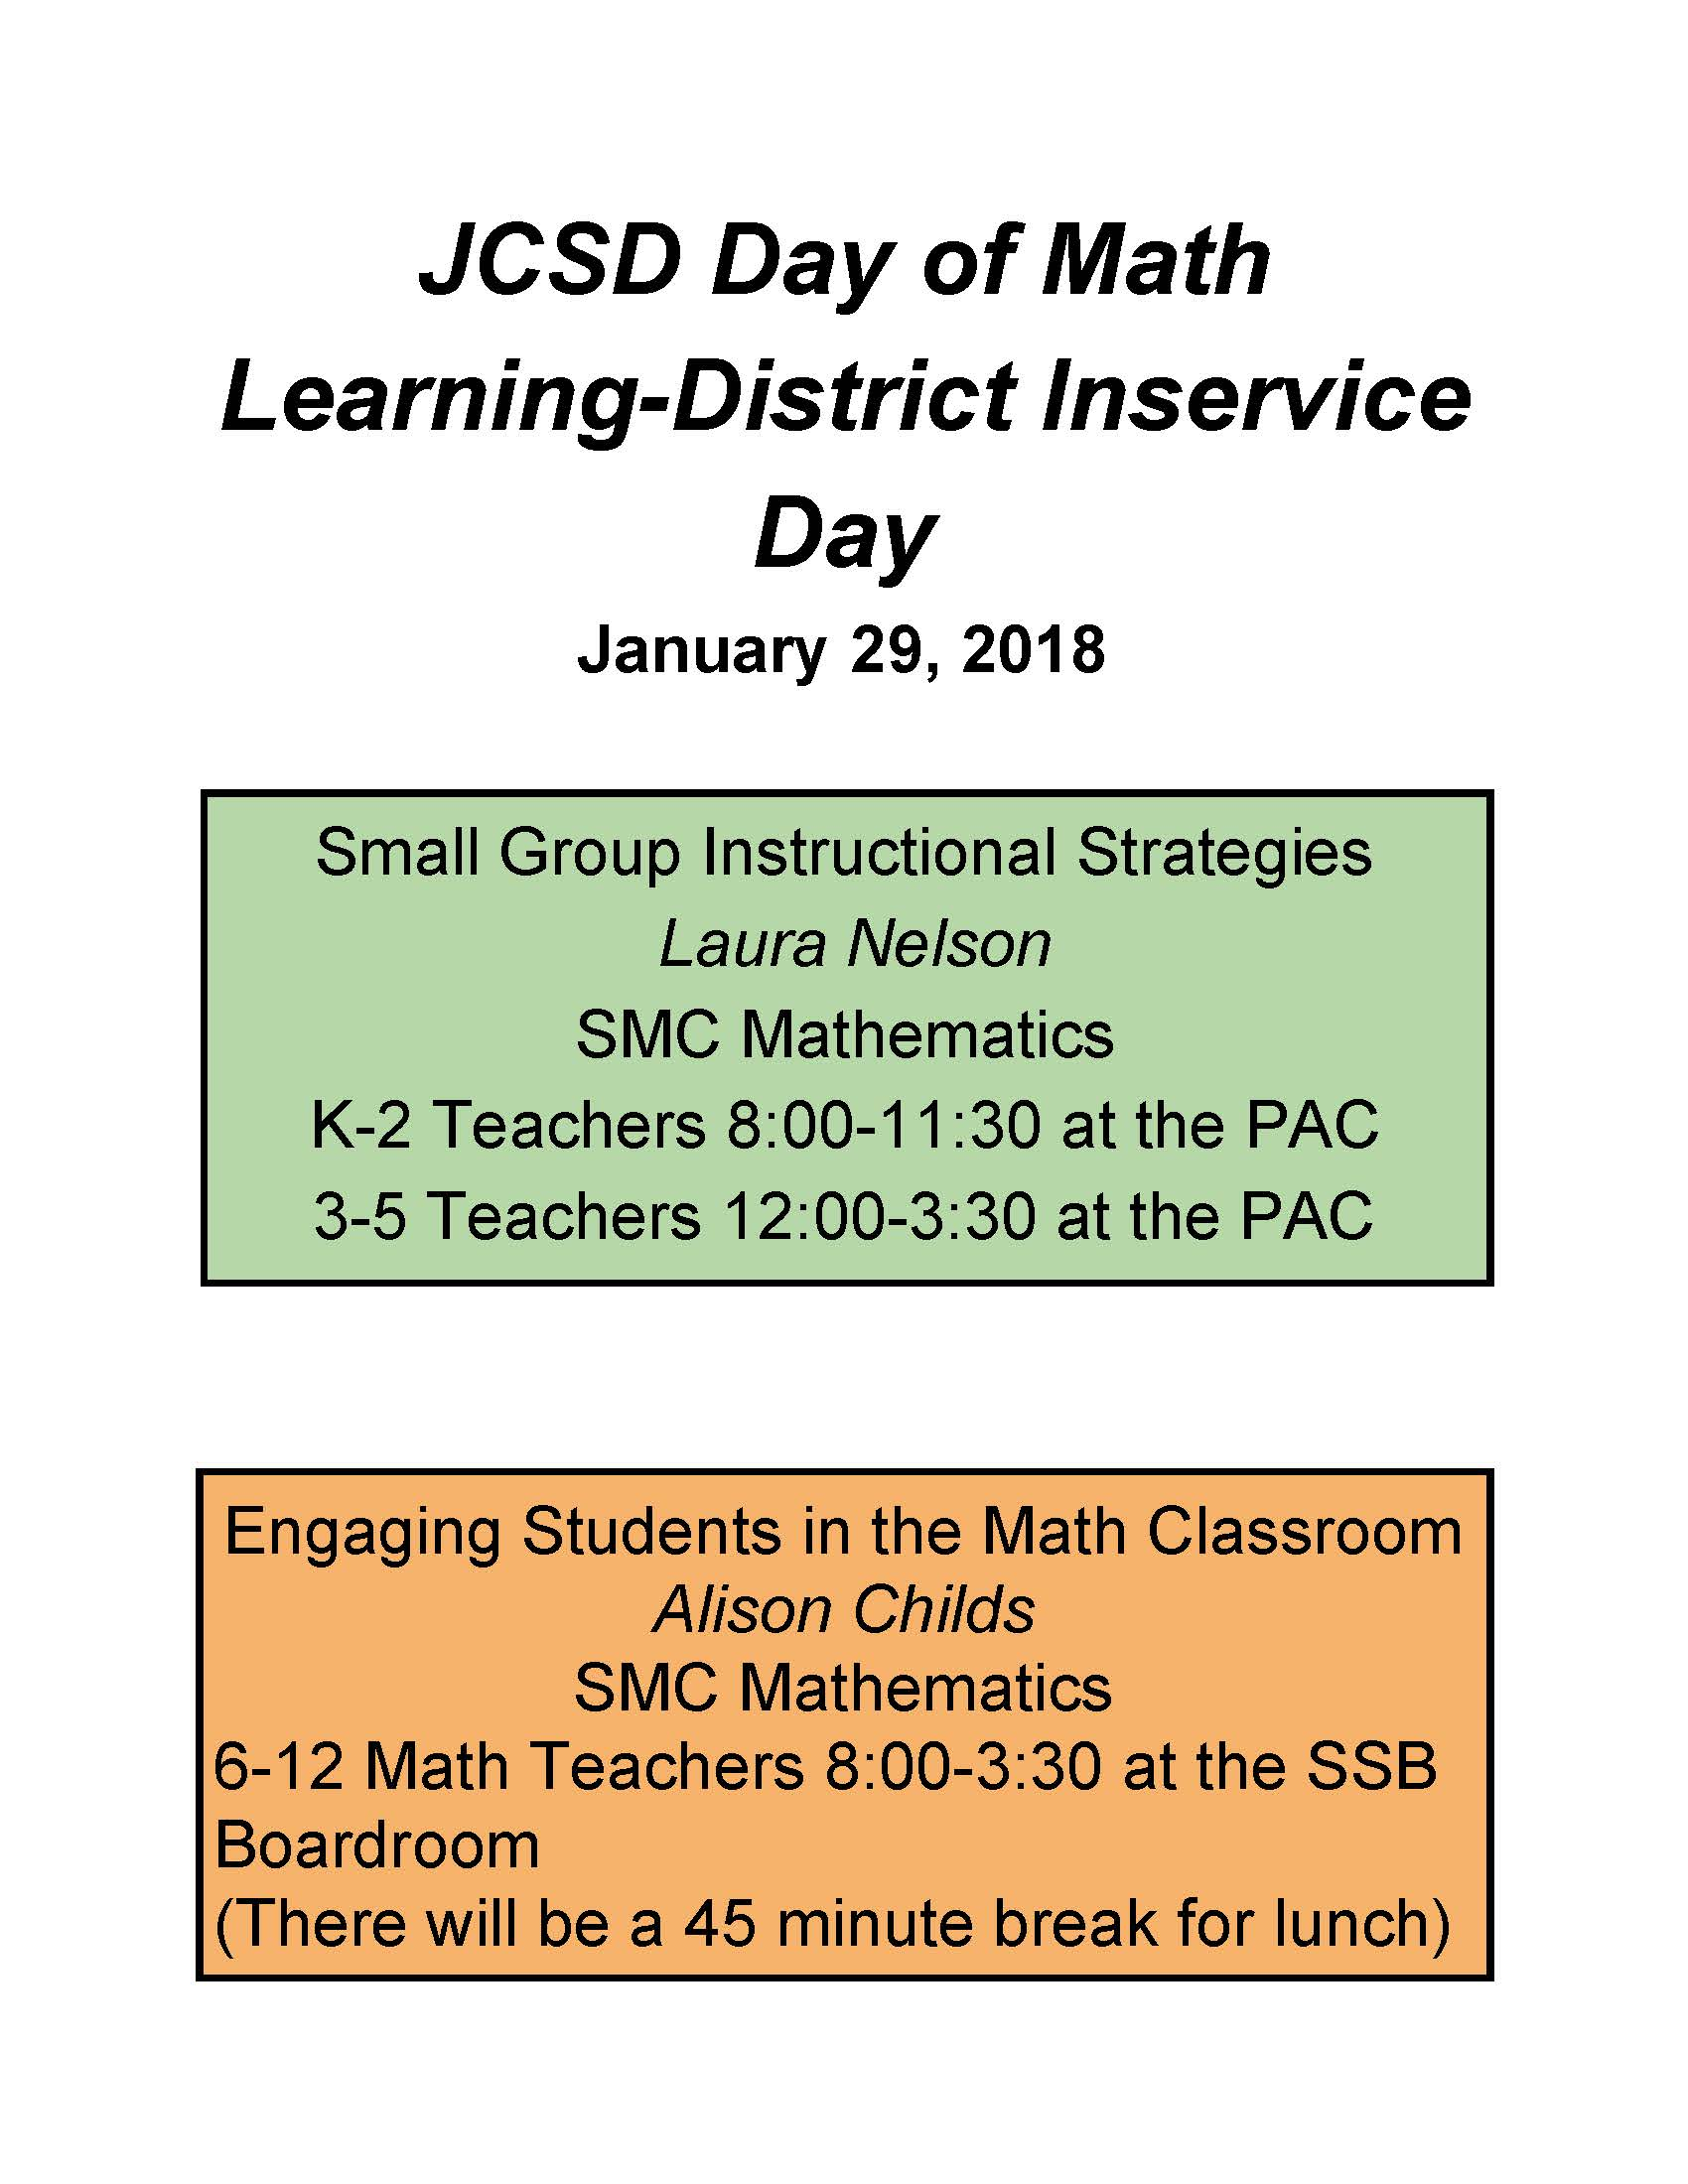 JCSD Day of Math Learning